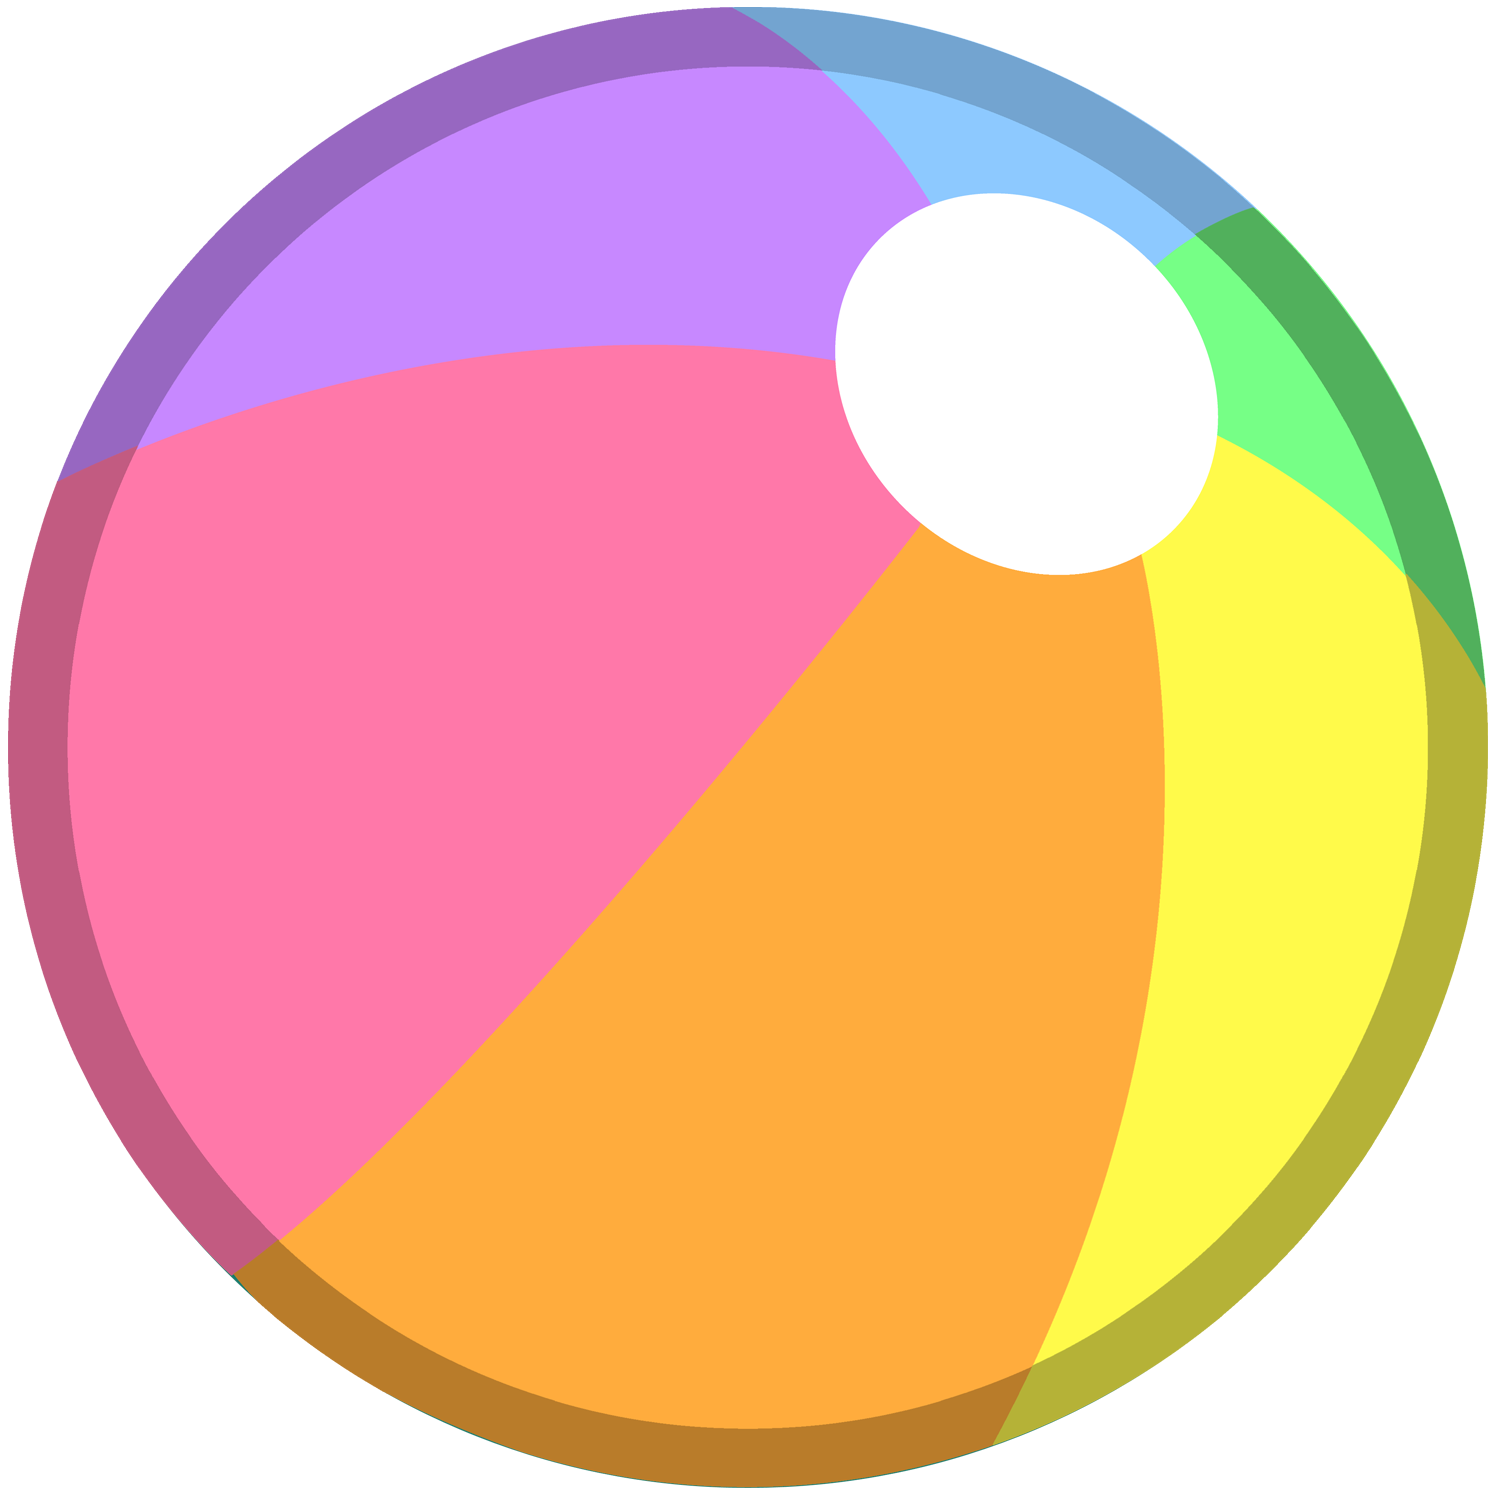 Clipart sun beach ball graphic free stock Beach Ball PNG Transparent Free Images | PNG Only graphic free stock